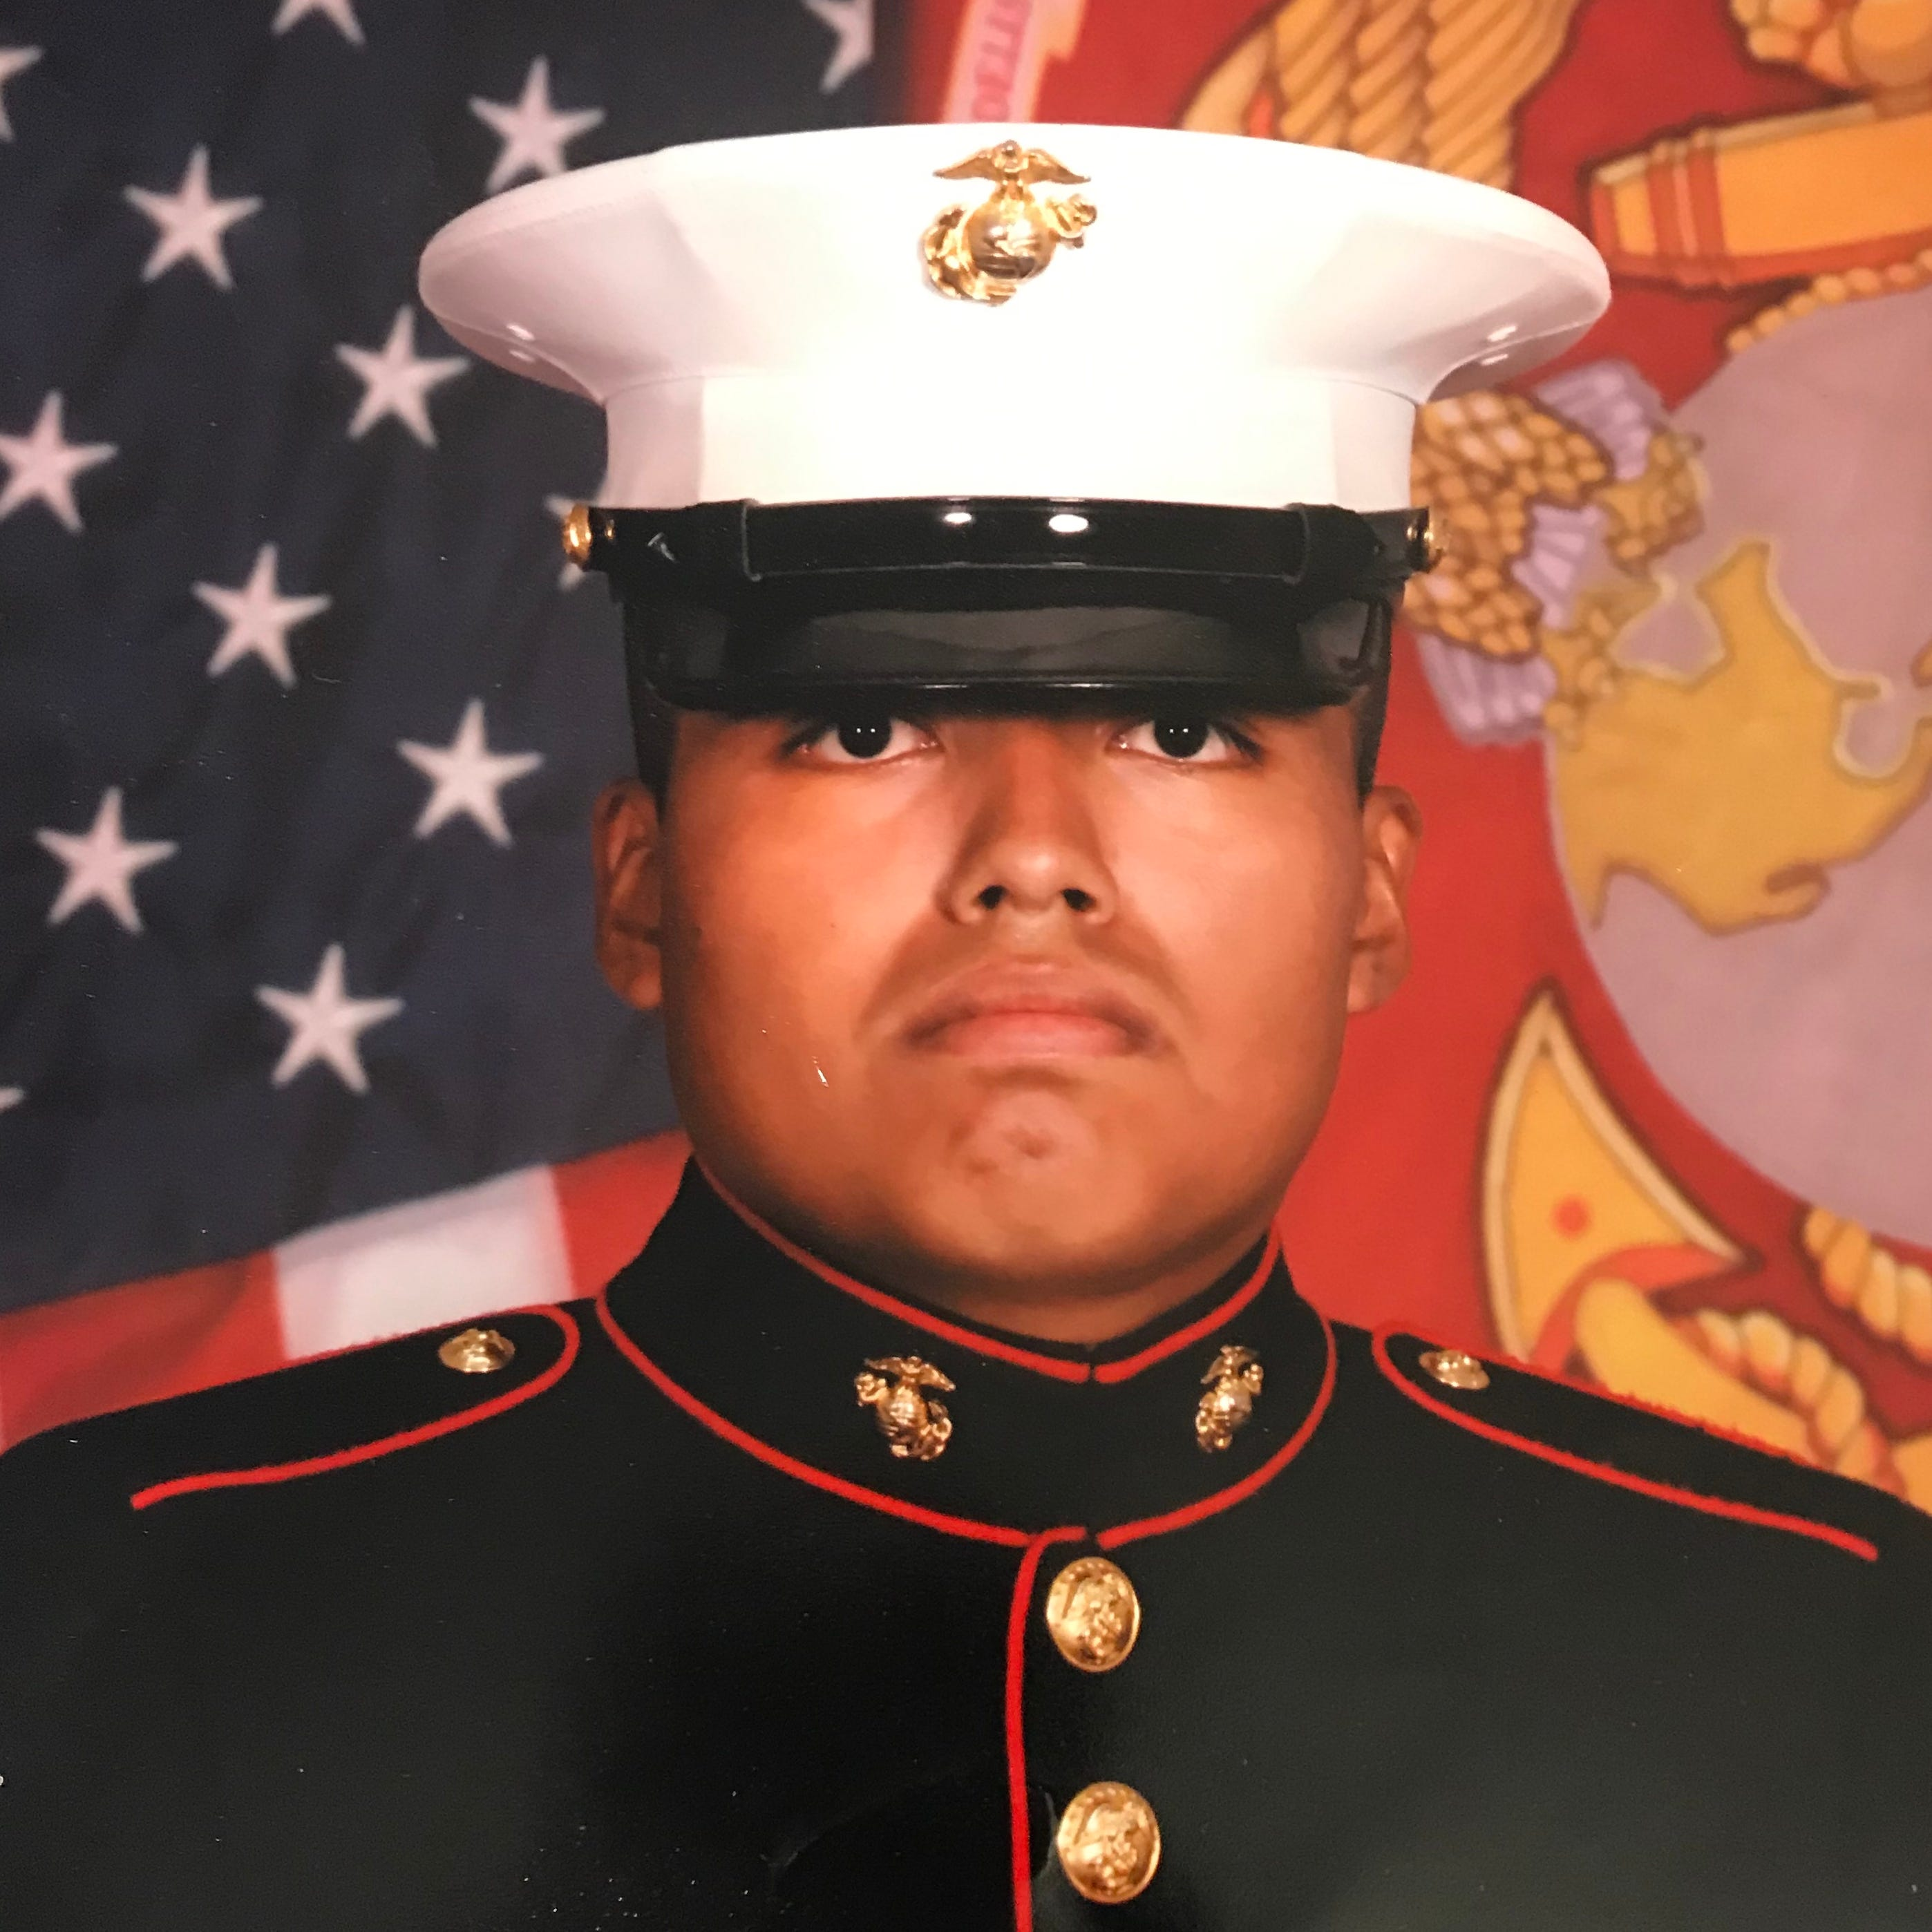 ACLU: Government targeted Michigan-born Marine for deportation